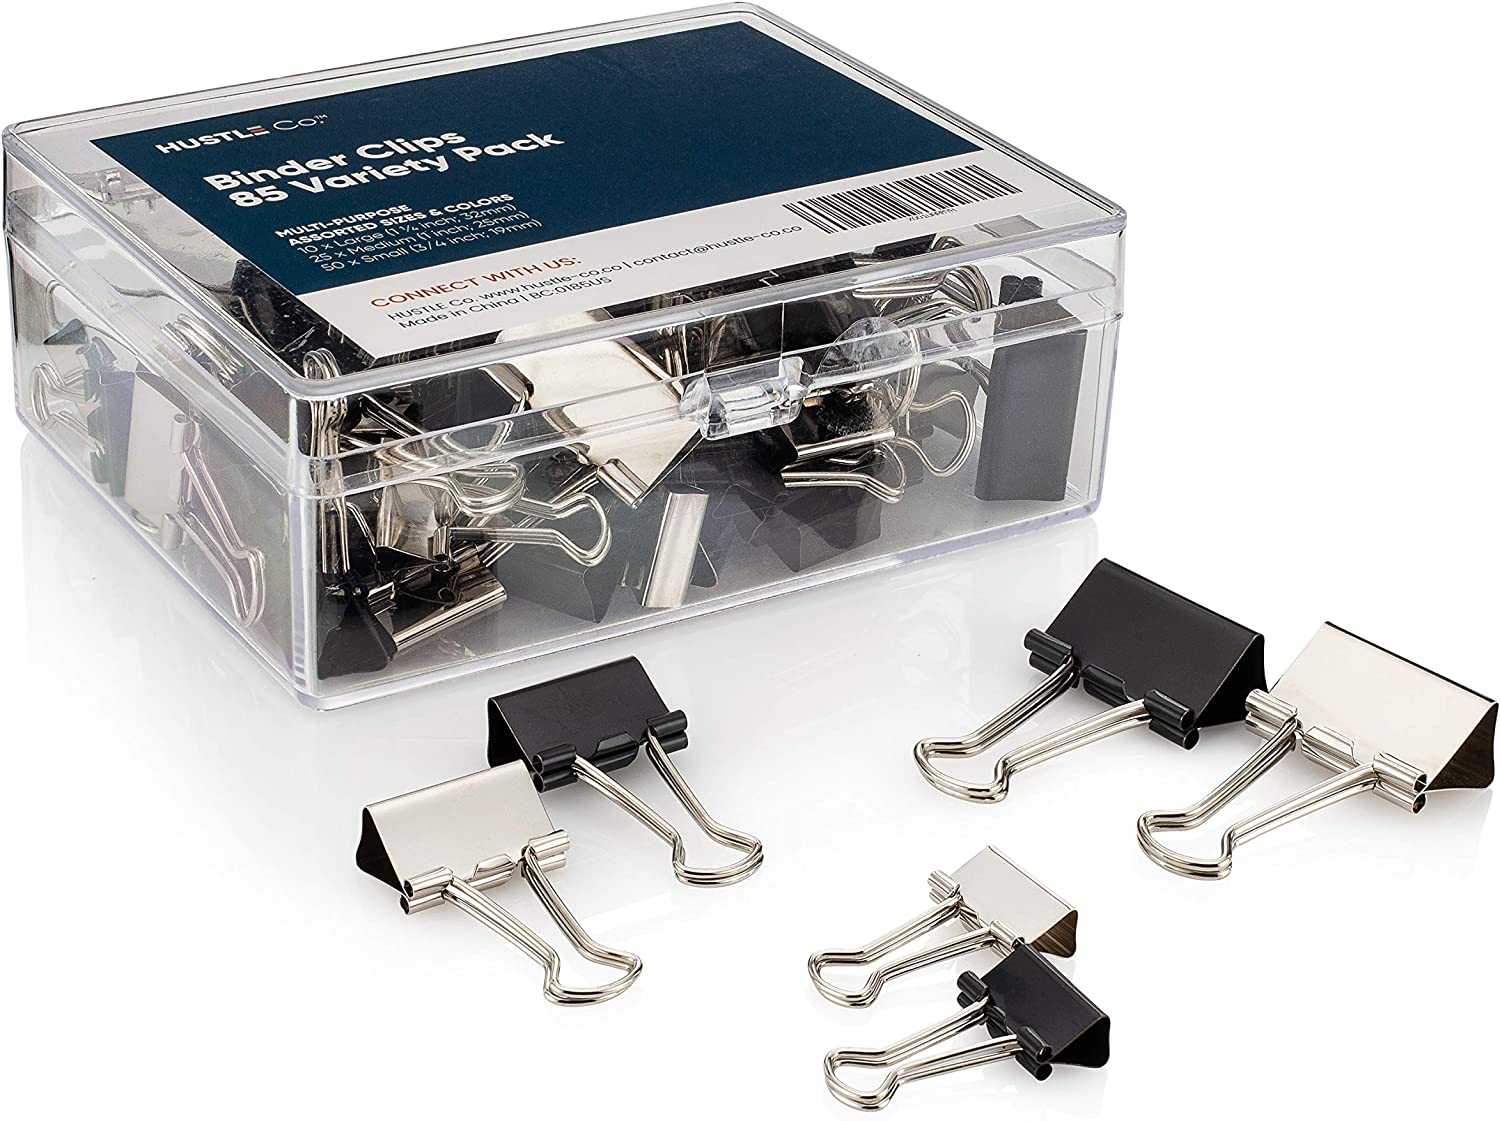 Binder Clips Assorted Sizes by HUSTLE Co | 85 Bulk Pack in Small, Medium and Large Size Metal Paper Clamps | Mixed Black and Silver Colored Bulldog Clips | Premium Office Supplies